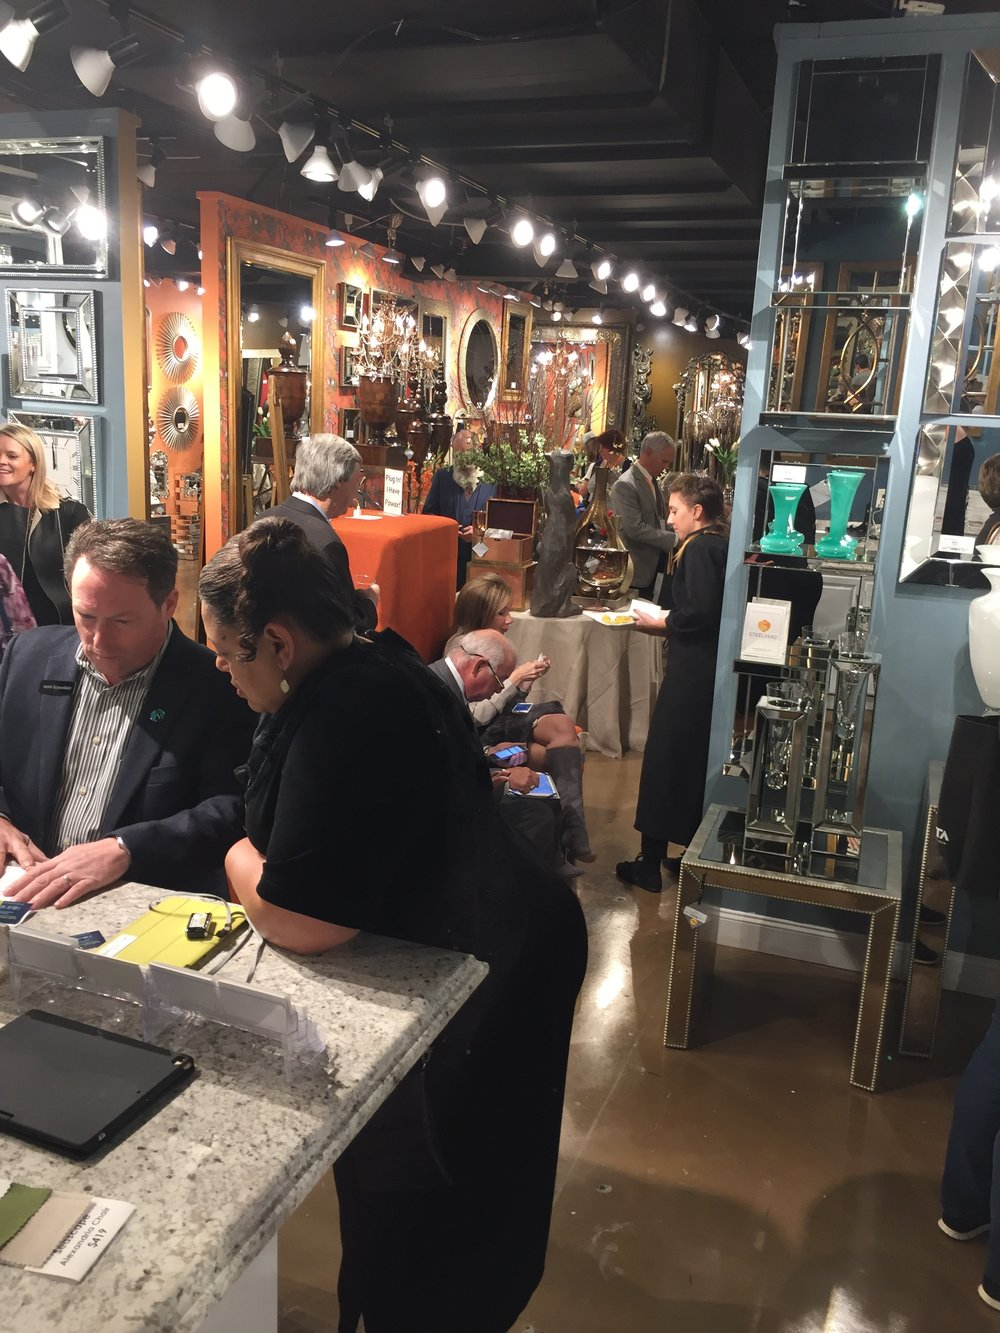 The showroom was hoppin'! Thank you to everyone that came to celebrate!